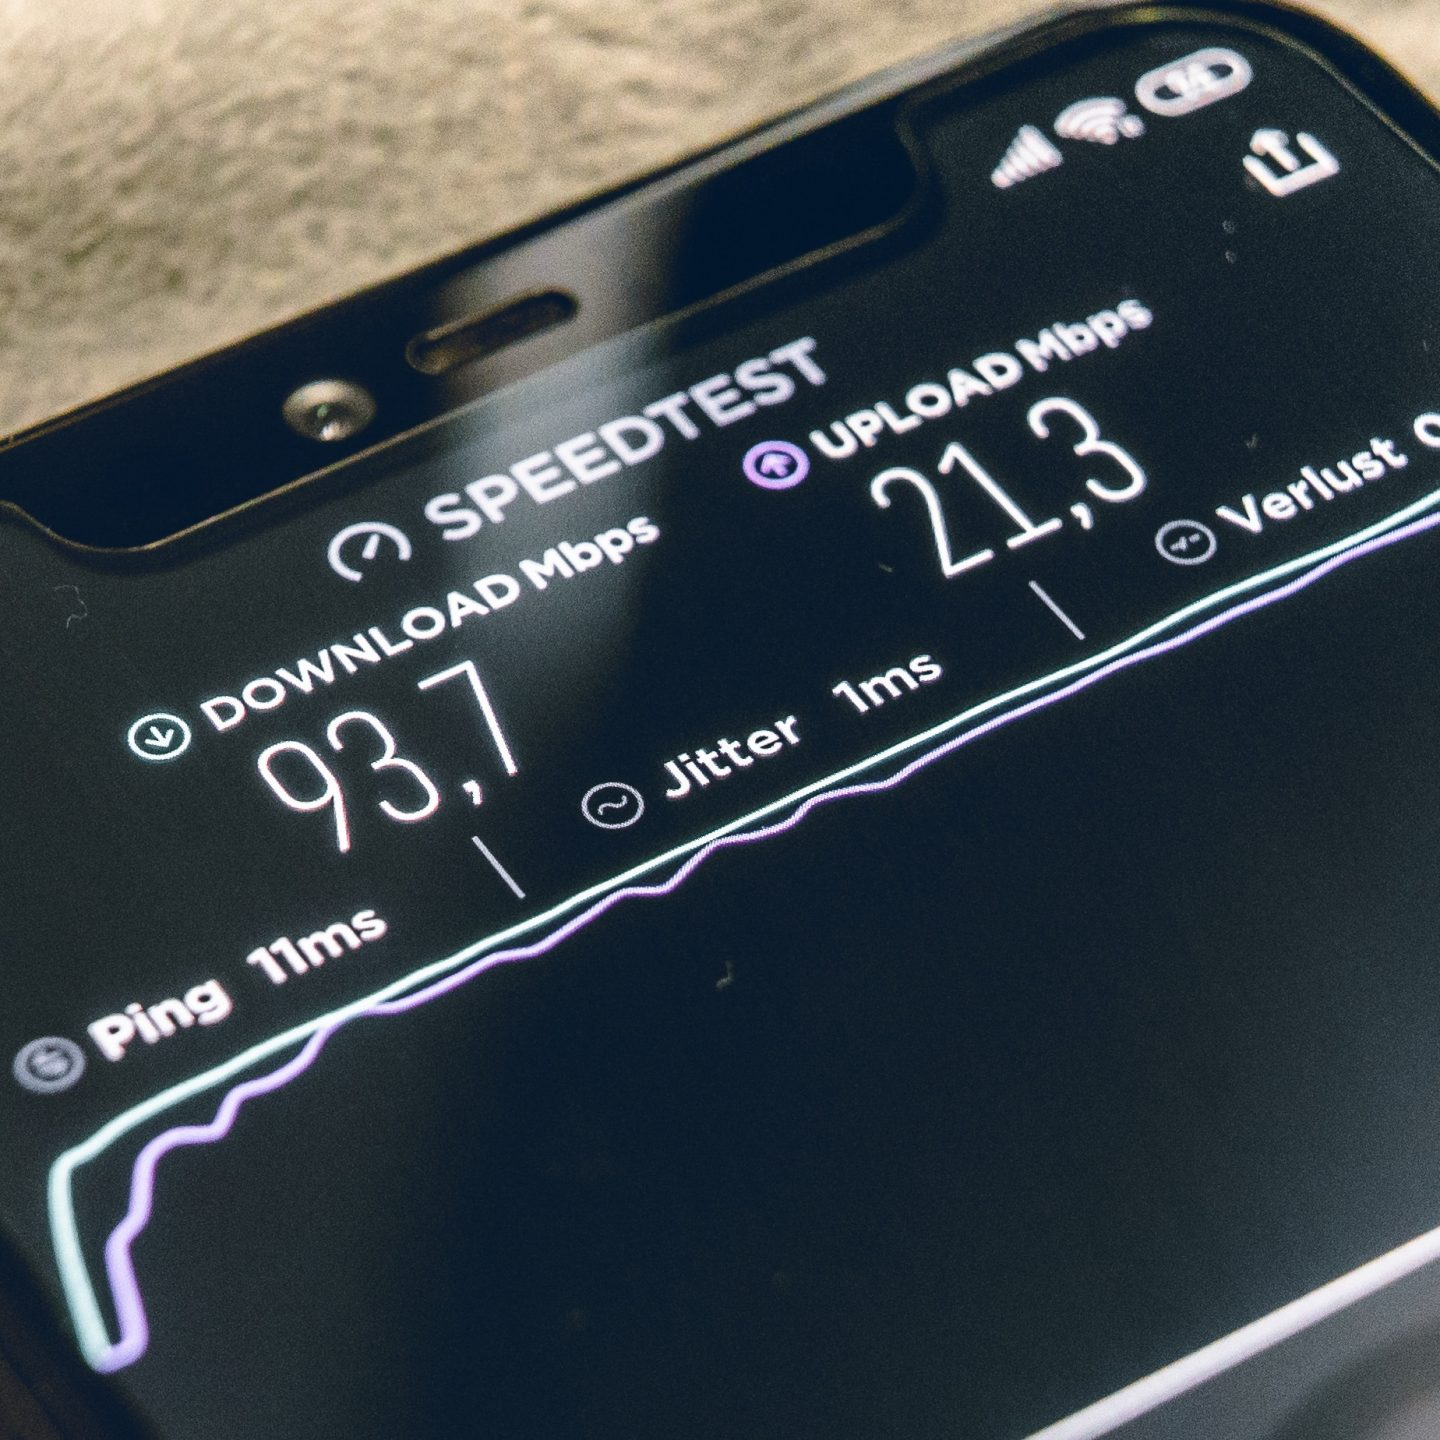 Low Latency, 5G, and the Video Streaming Pipeline